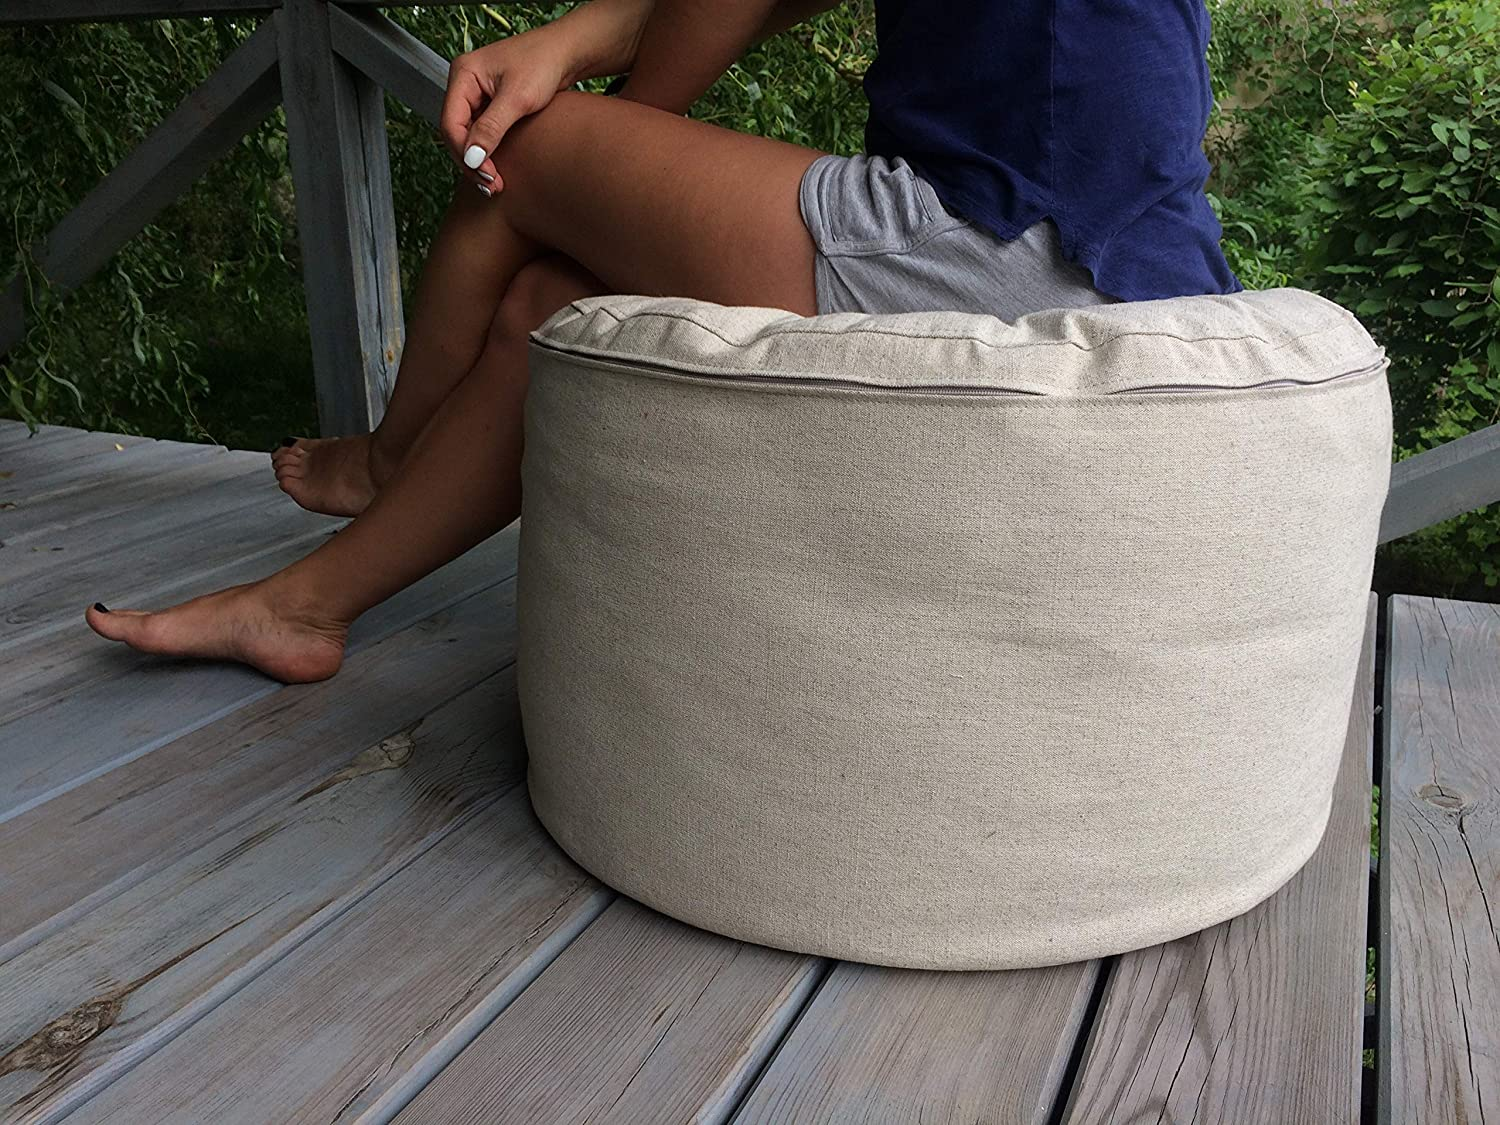 Pillowholic Linen round floor pouf ottoman removable cover Covers only !!! Eco furniture Rustic style 24x15 inches